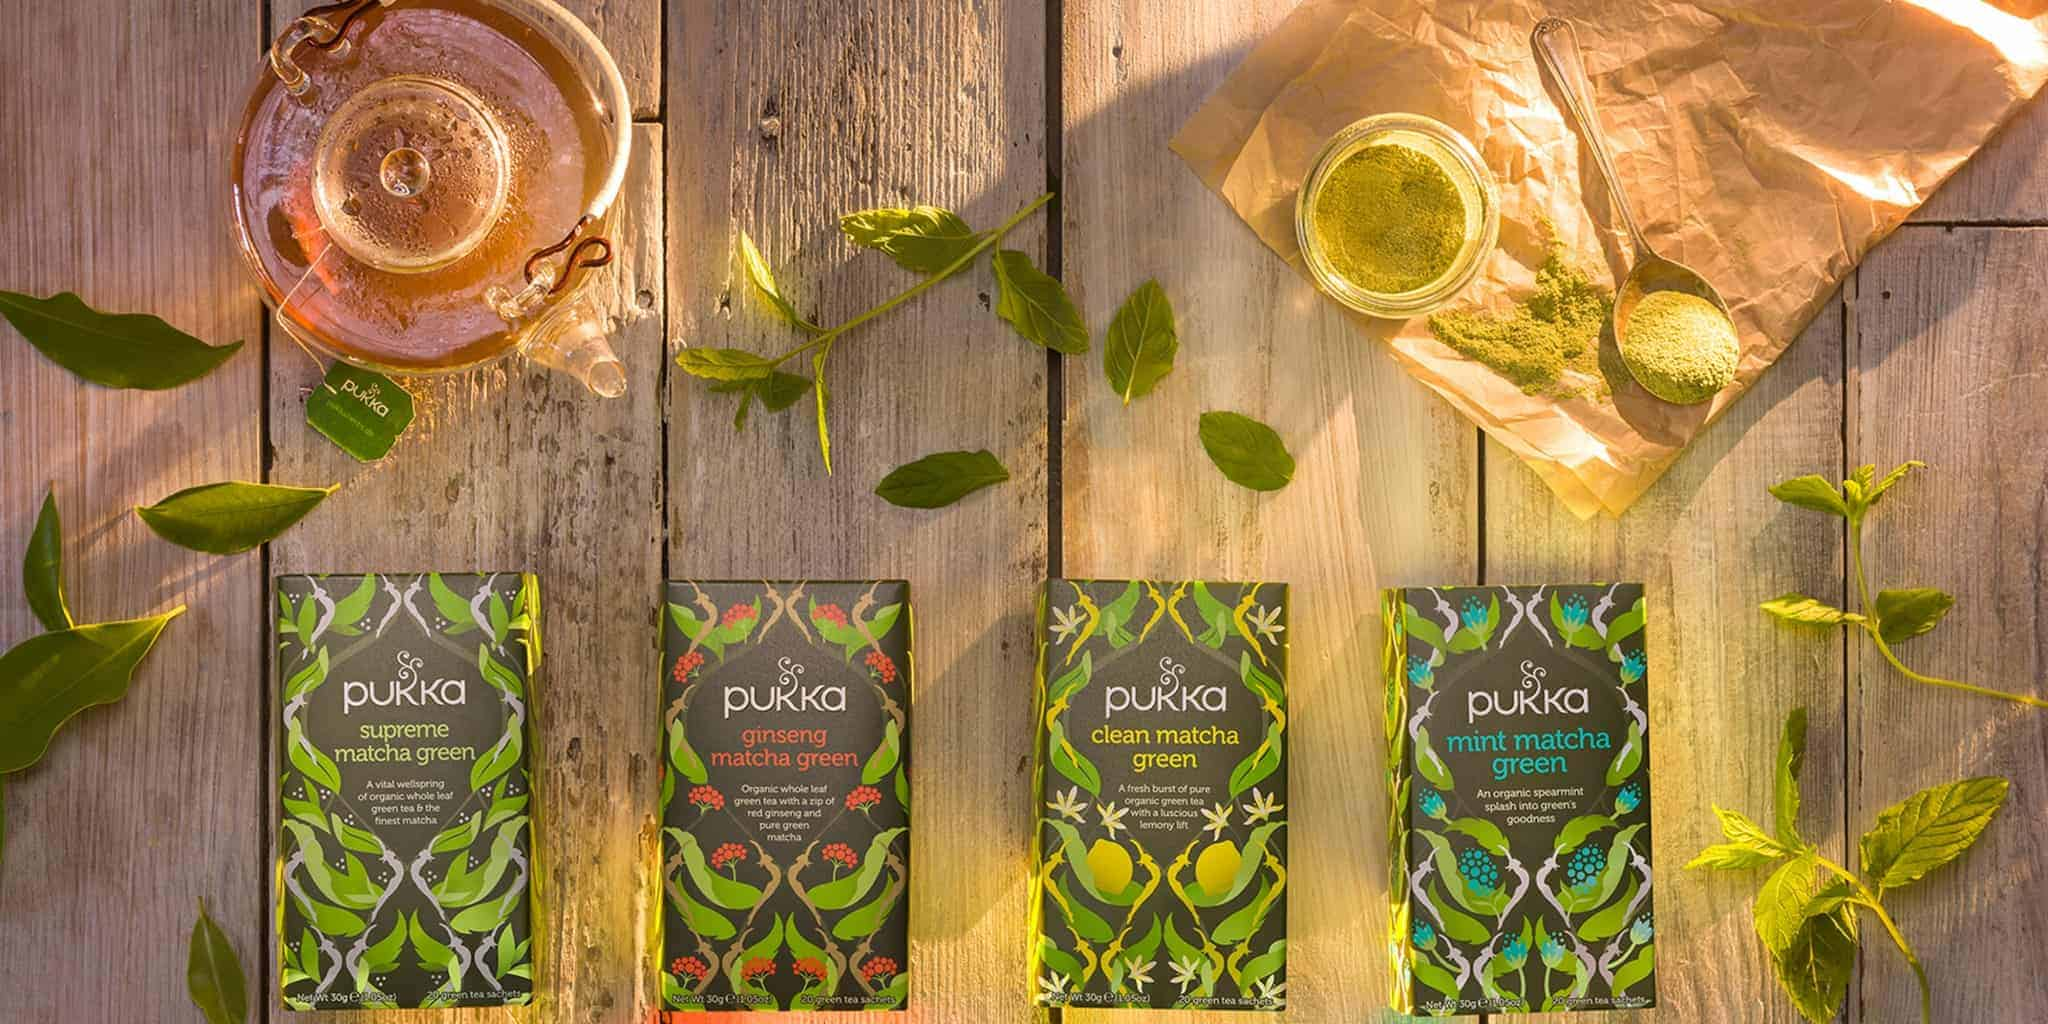 Our top tea brands for a plastic-free cuppa